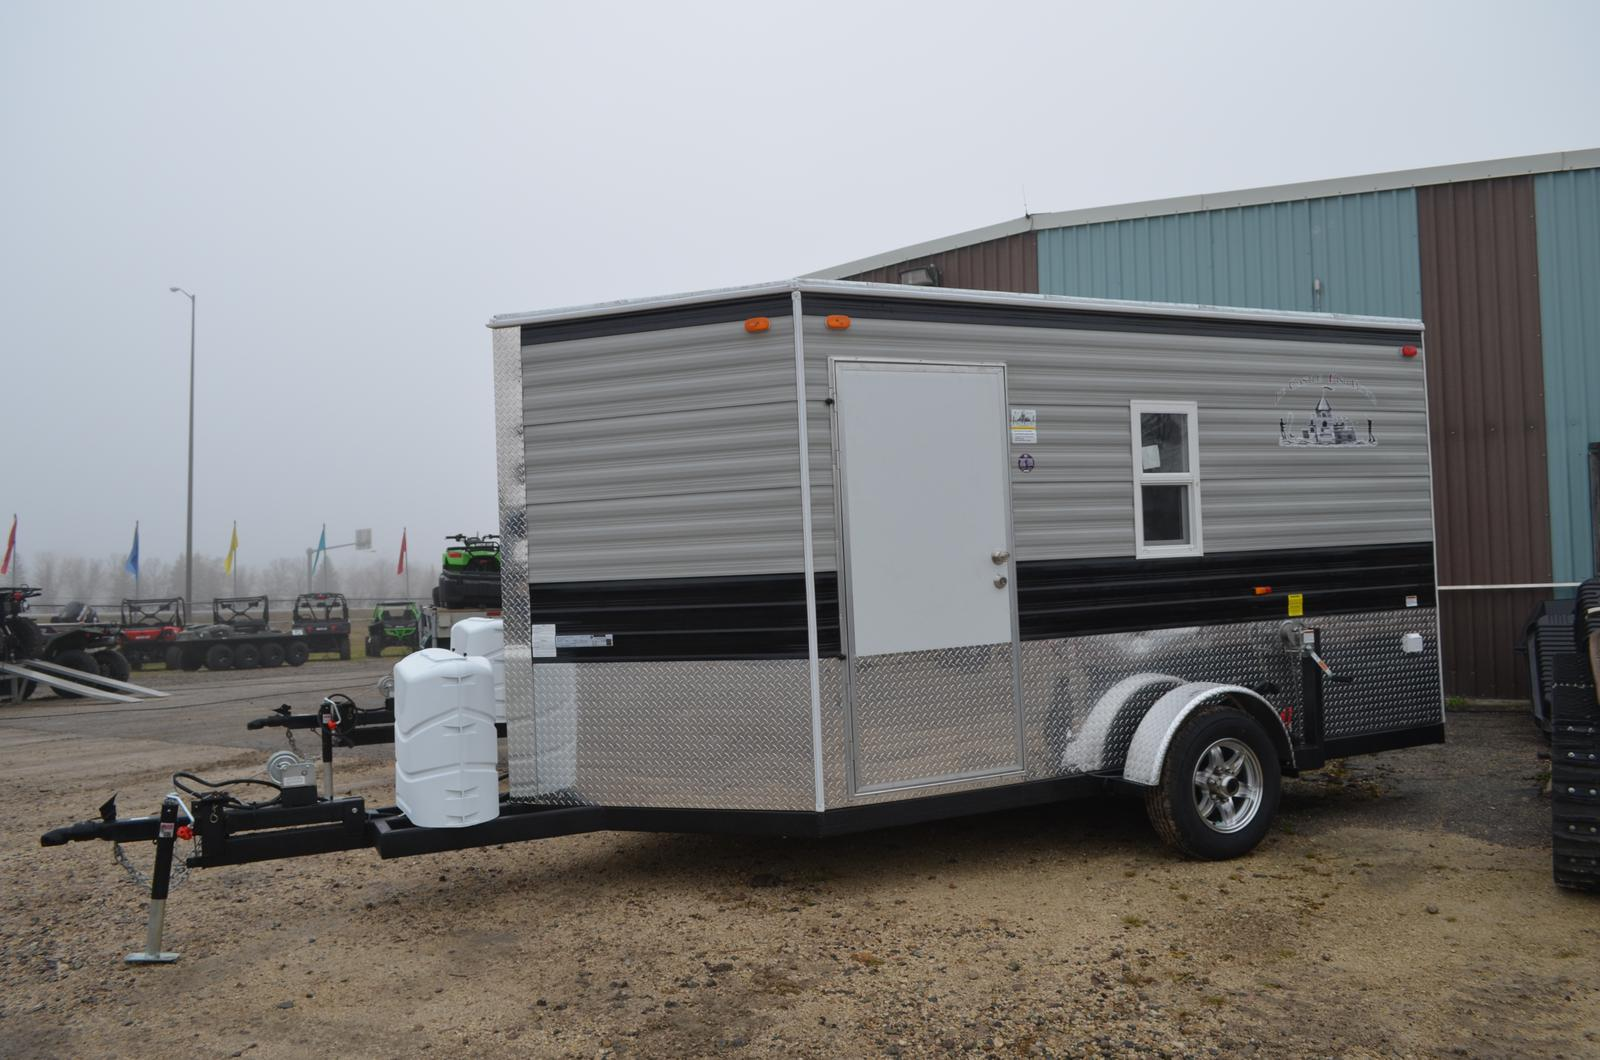 2017 ice castle special 6.5' x 12' for sale in elie, mb | luke's